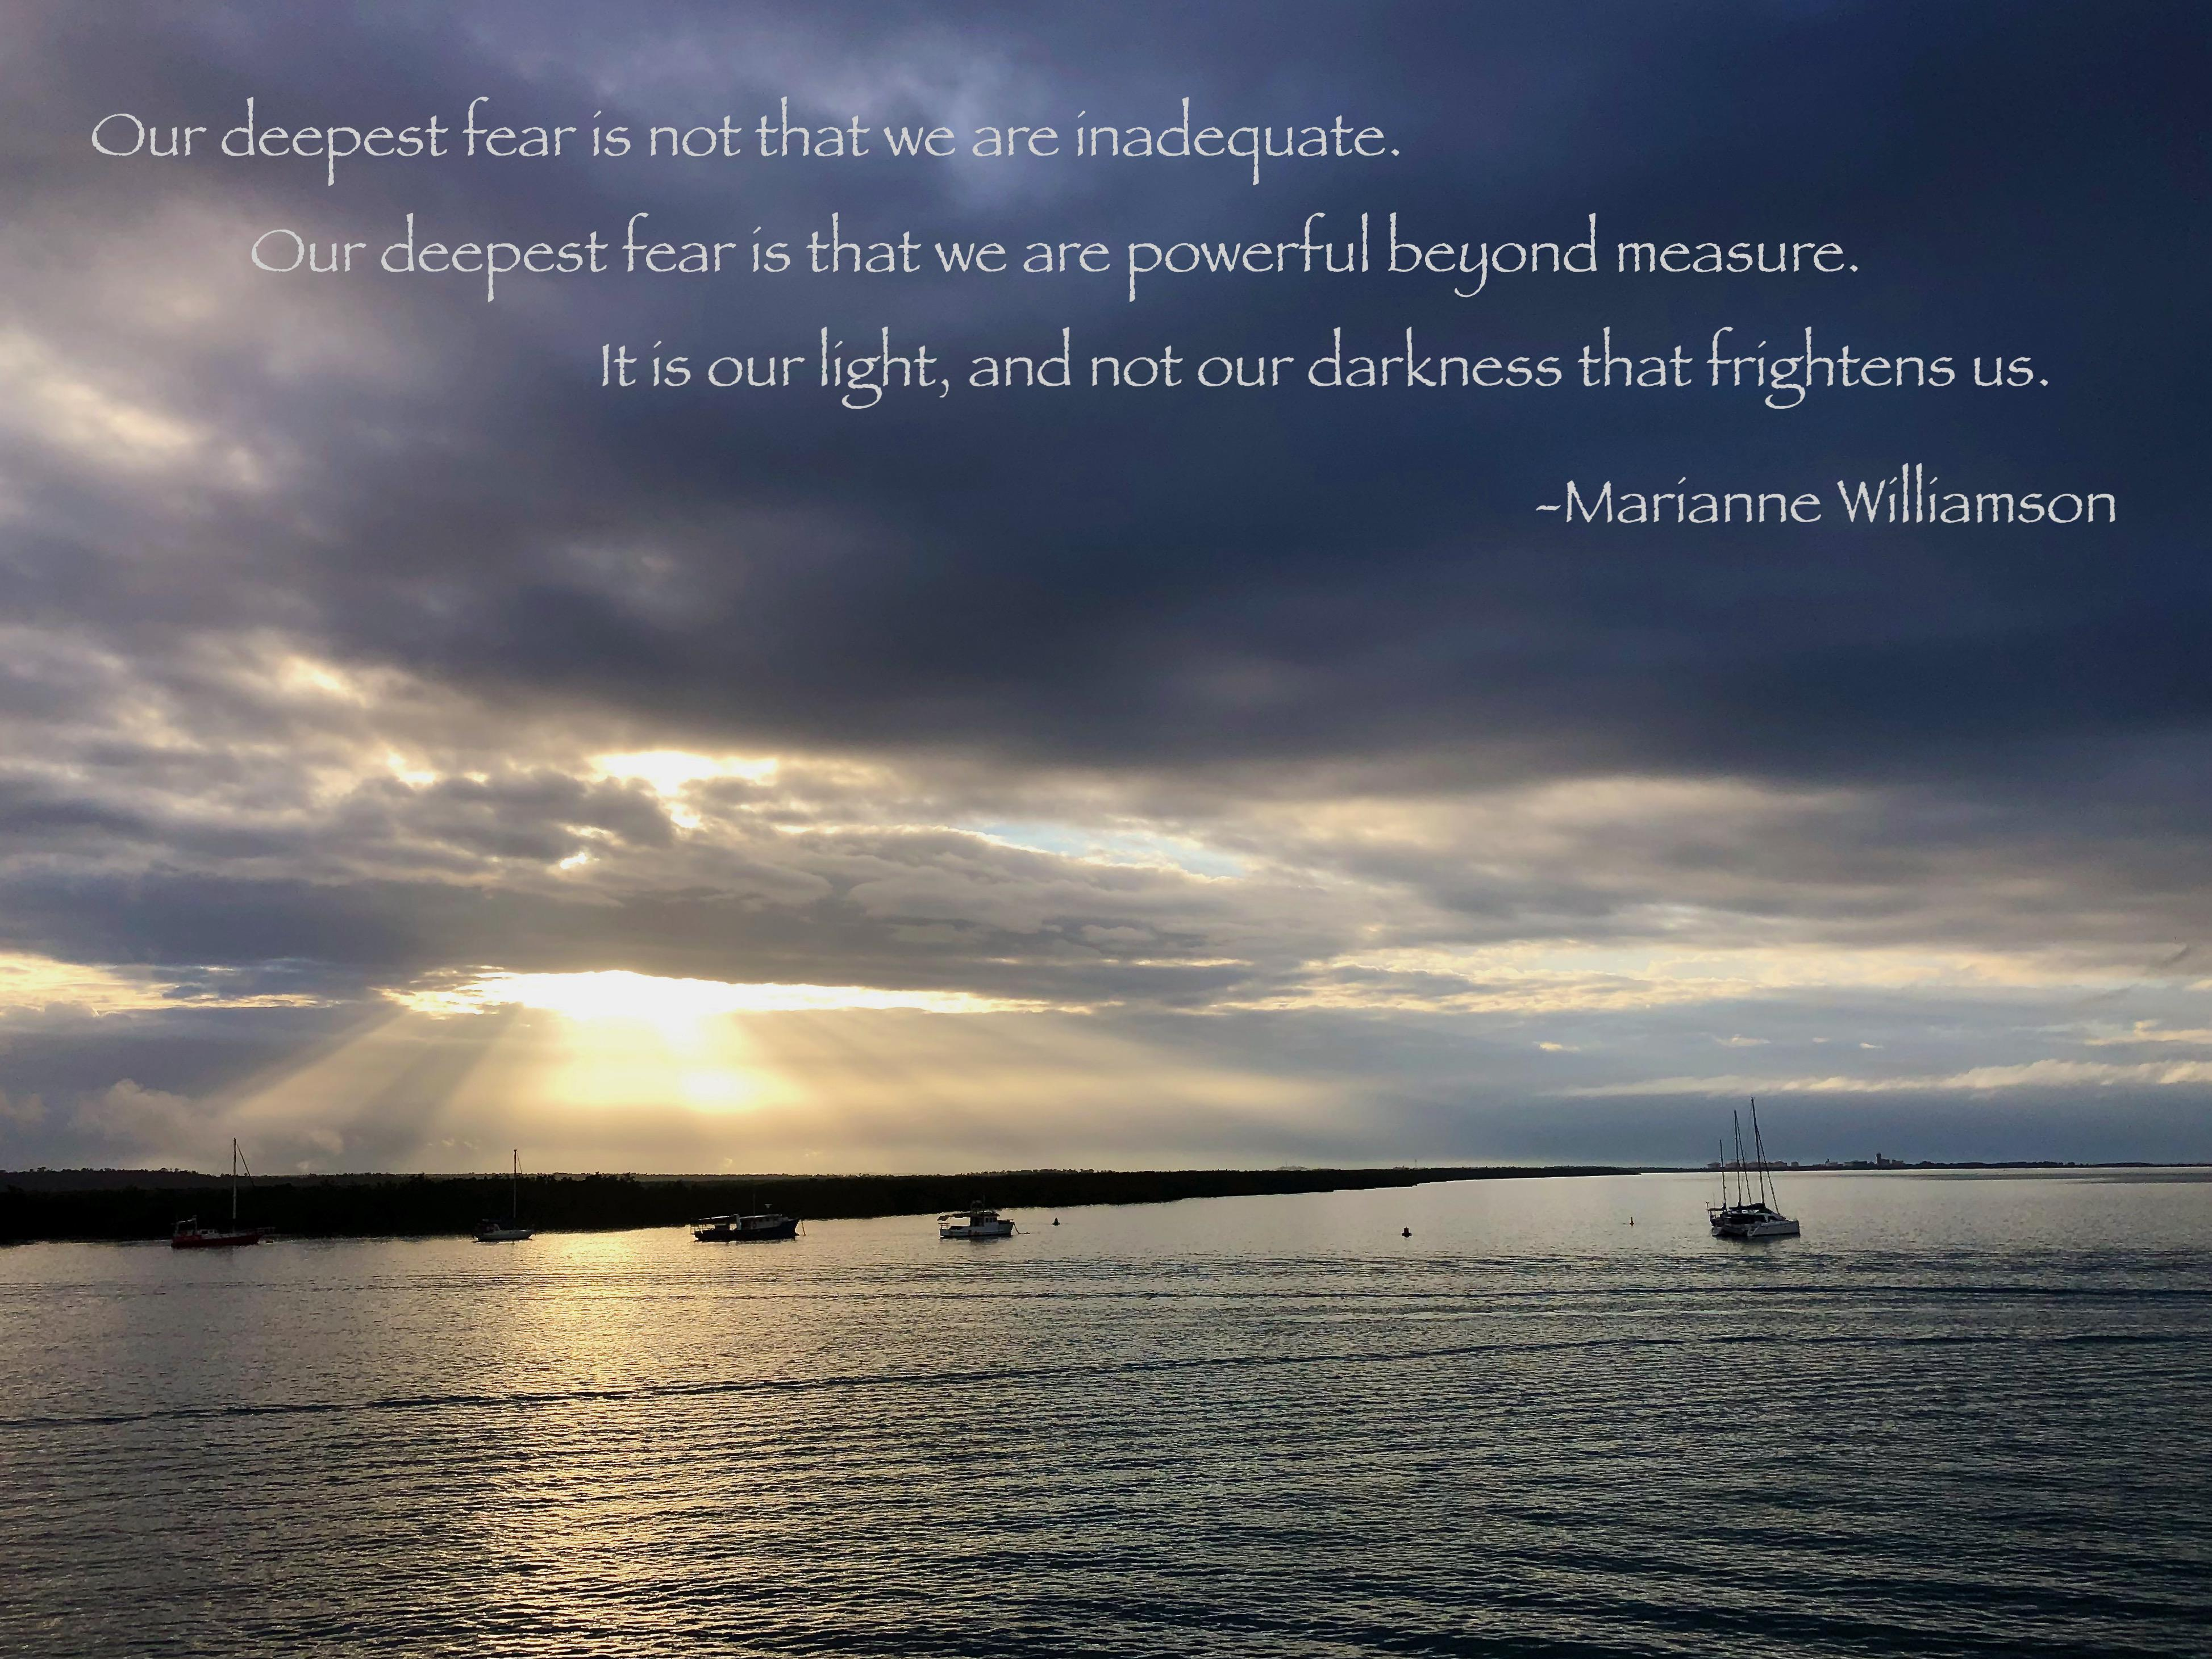 [Image] What light of yours are you frightened of? Don't let fear stop you from sharing it with the world!